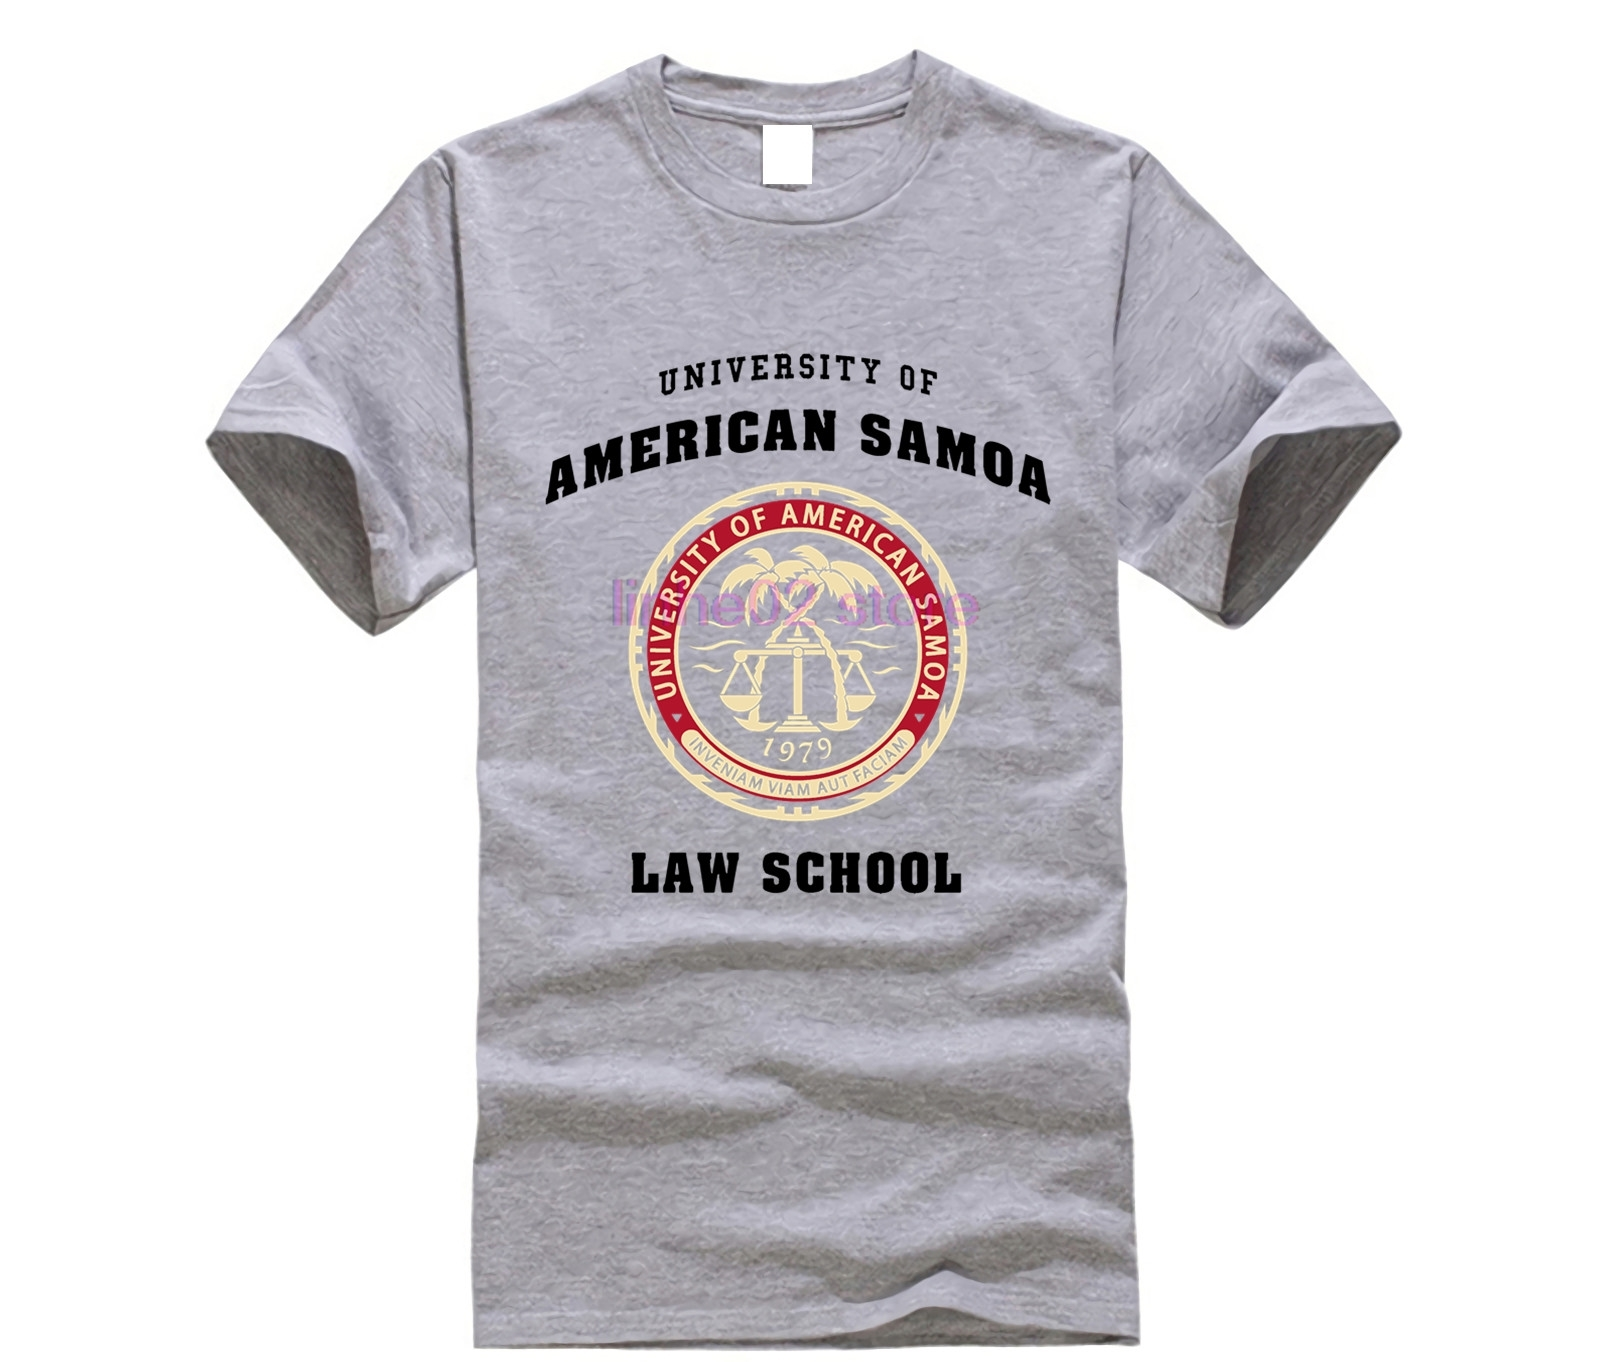 BCS - University of American Samoa Law School T-Shirt Cotton casual cool short-sleeved T-shirt image